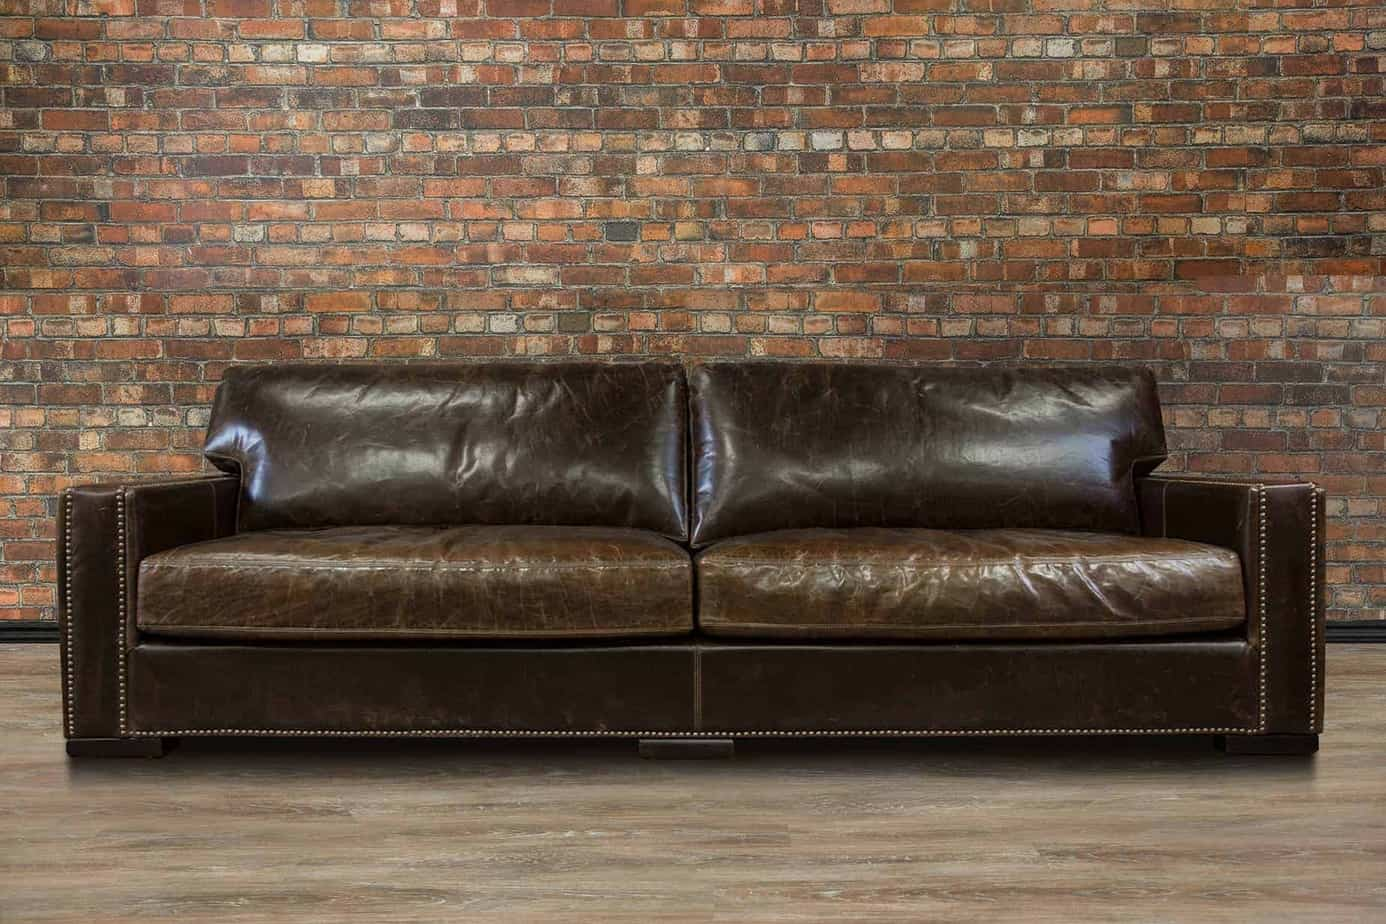 Leather Furniture Traveler Collection: Chartwell Collection Extra Large Sofa Deep Seat Series